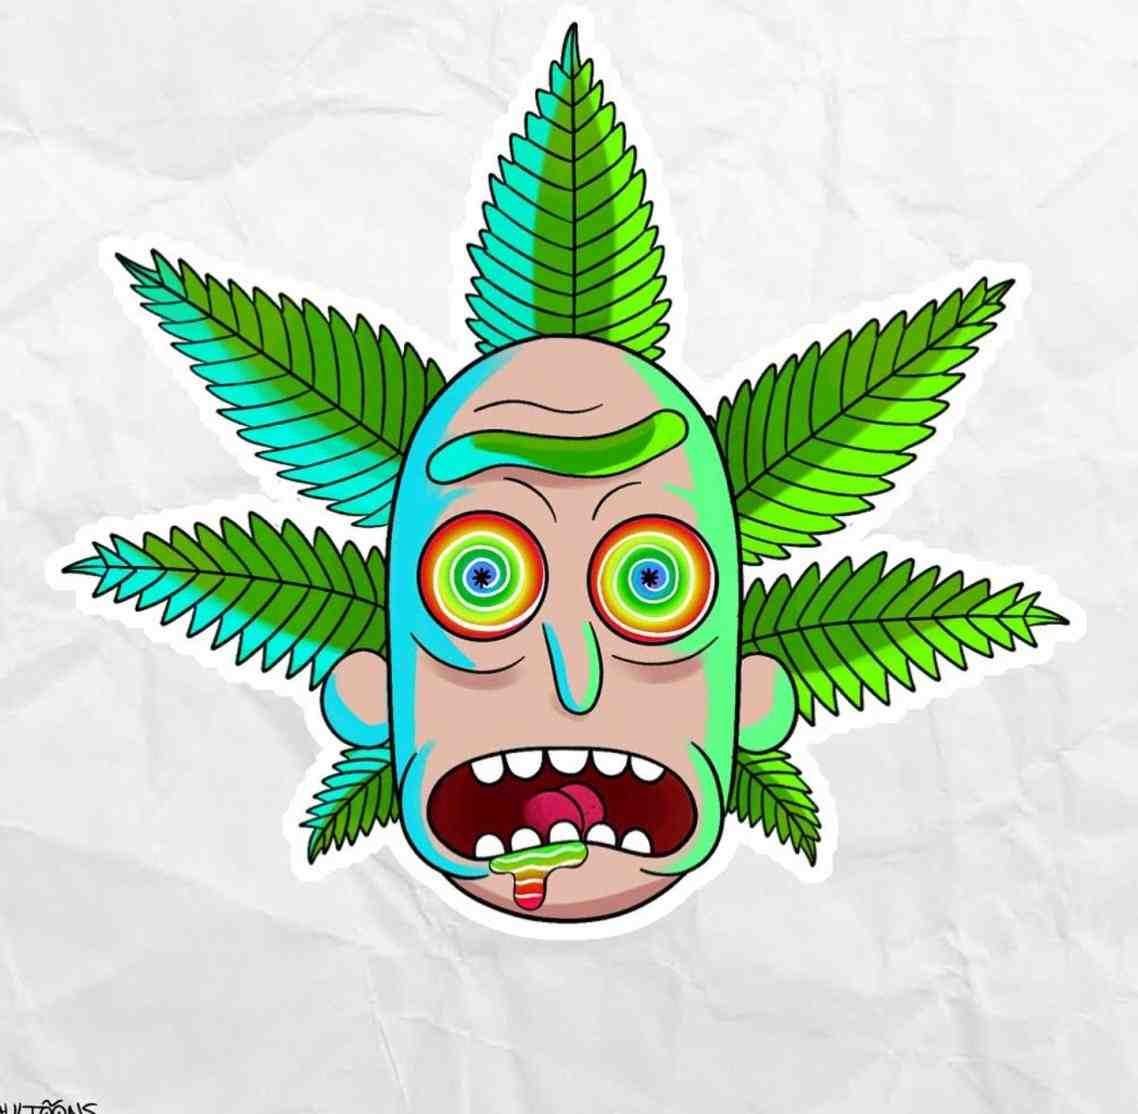 Stoner Drawings Simple Super Simple Draw Is For The Budding Artist In Every Child